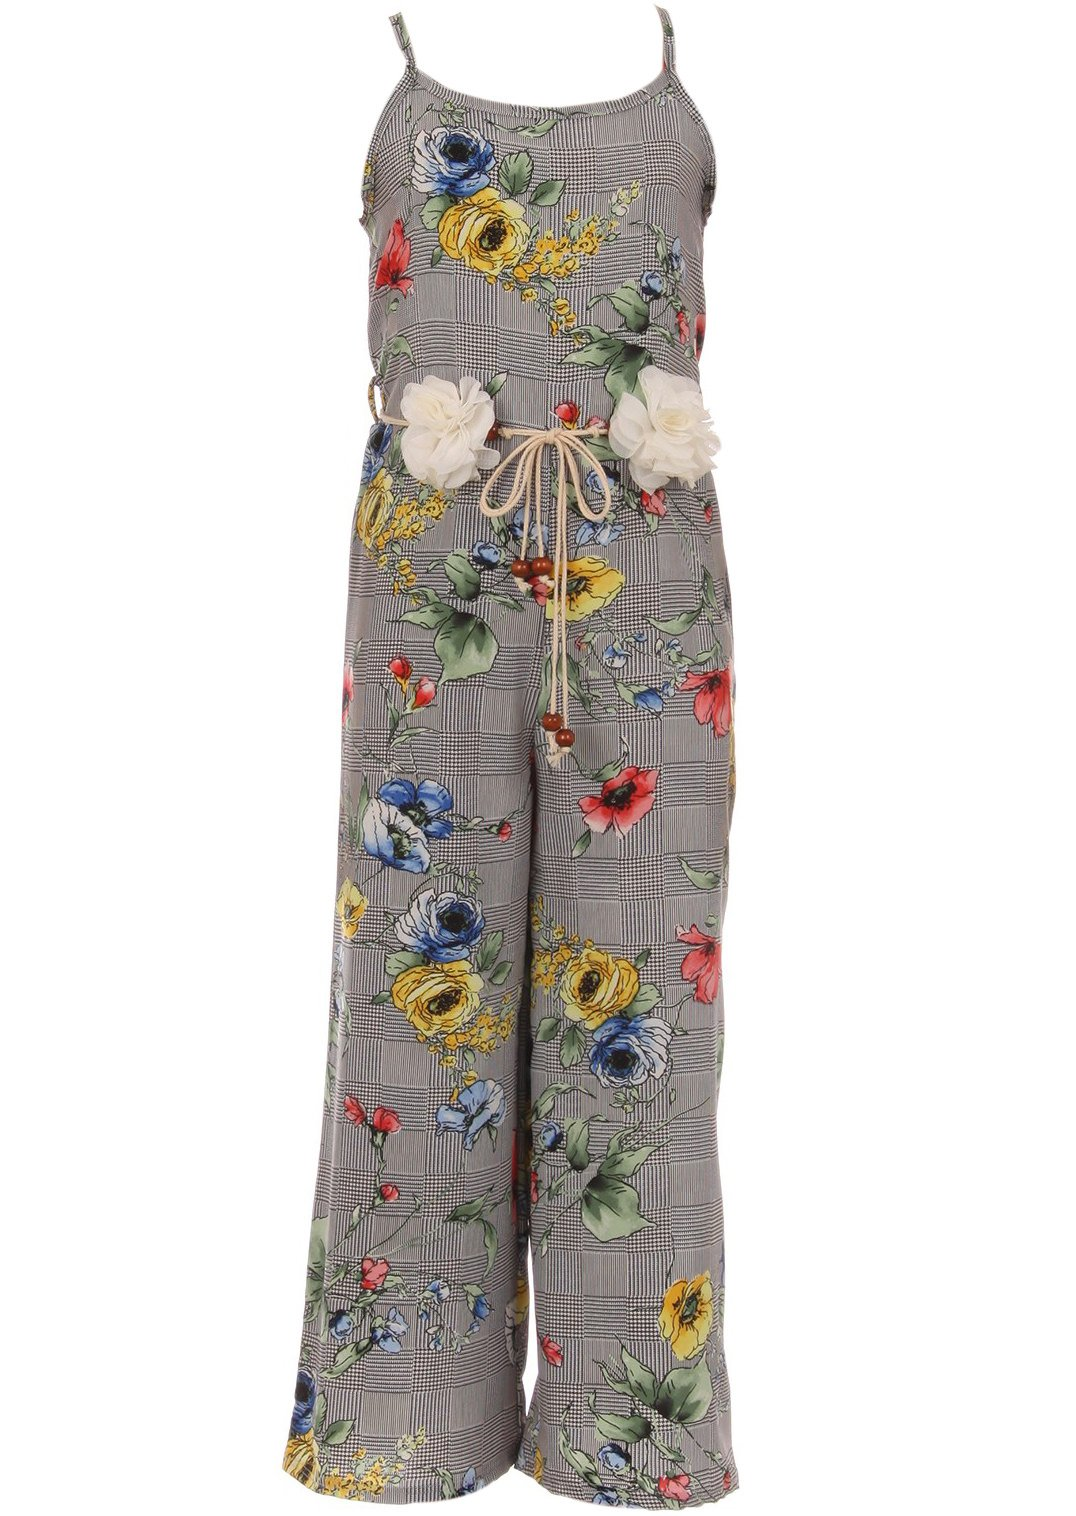 BNY Corner Little Girl Girls Jumpsuits Floral Graduation Casual Summer Birthday Outfit Yellow 6 JKS 2127